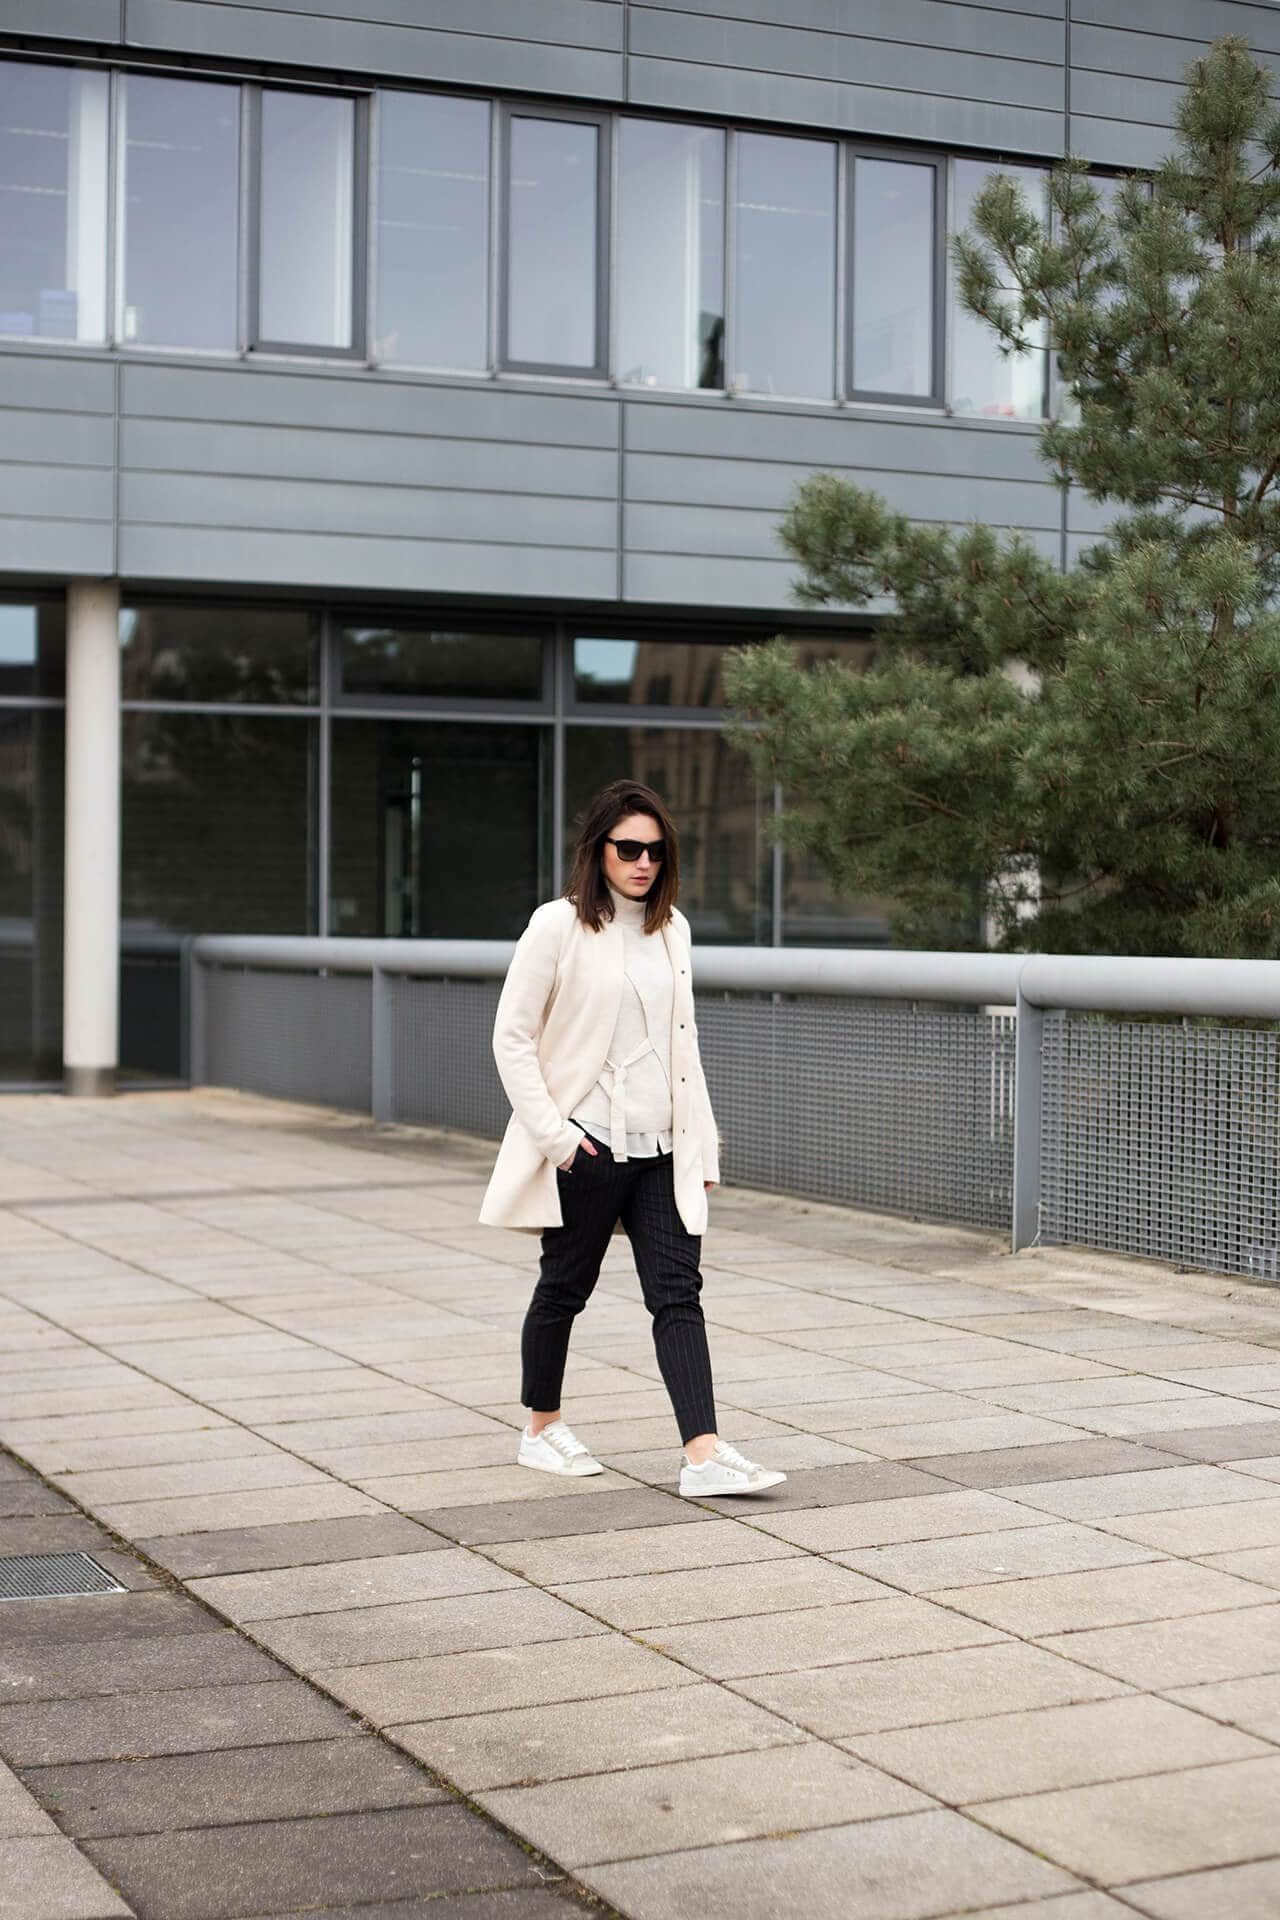 Turtleneck & Anzughose mit Sneakers Anzugjoggers H&M